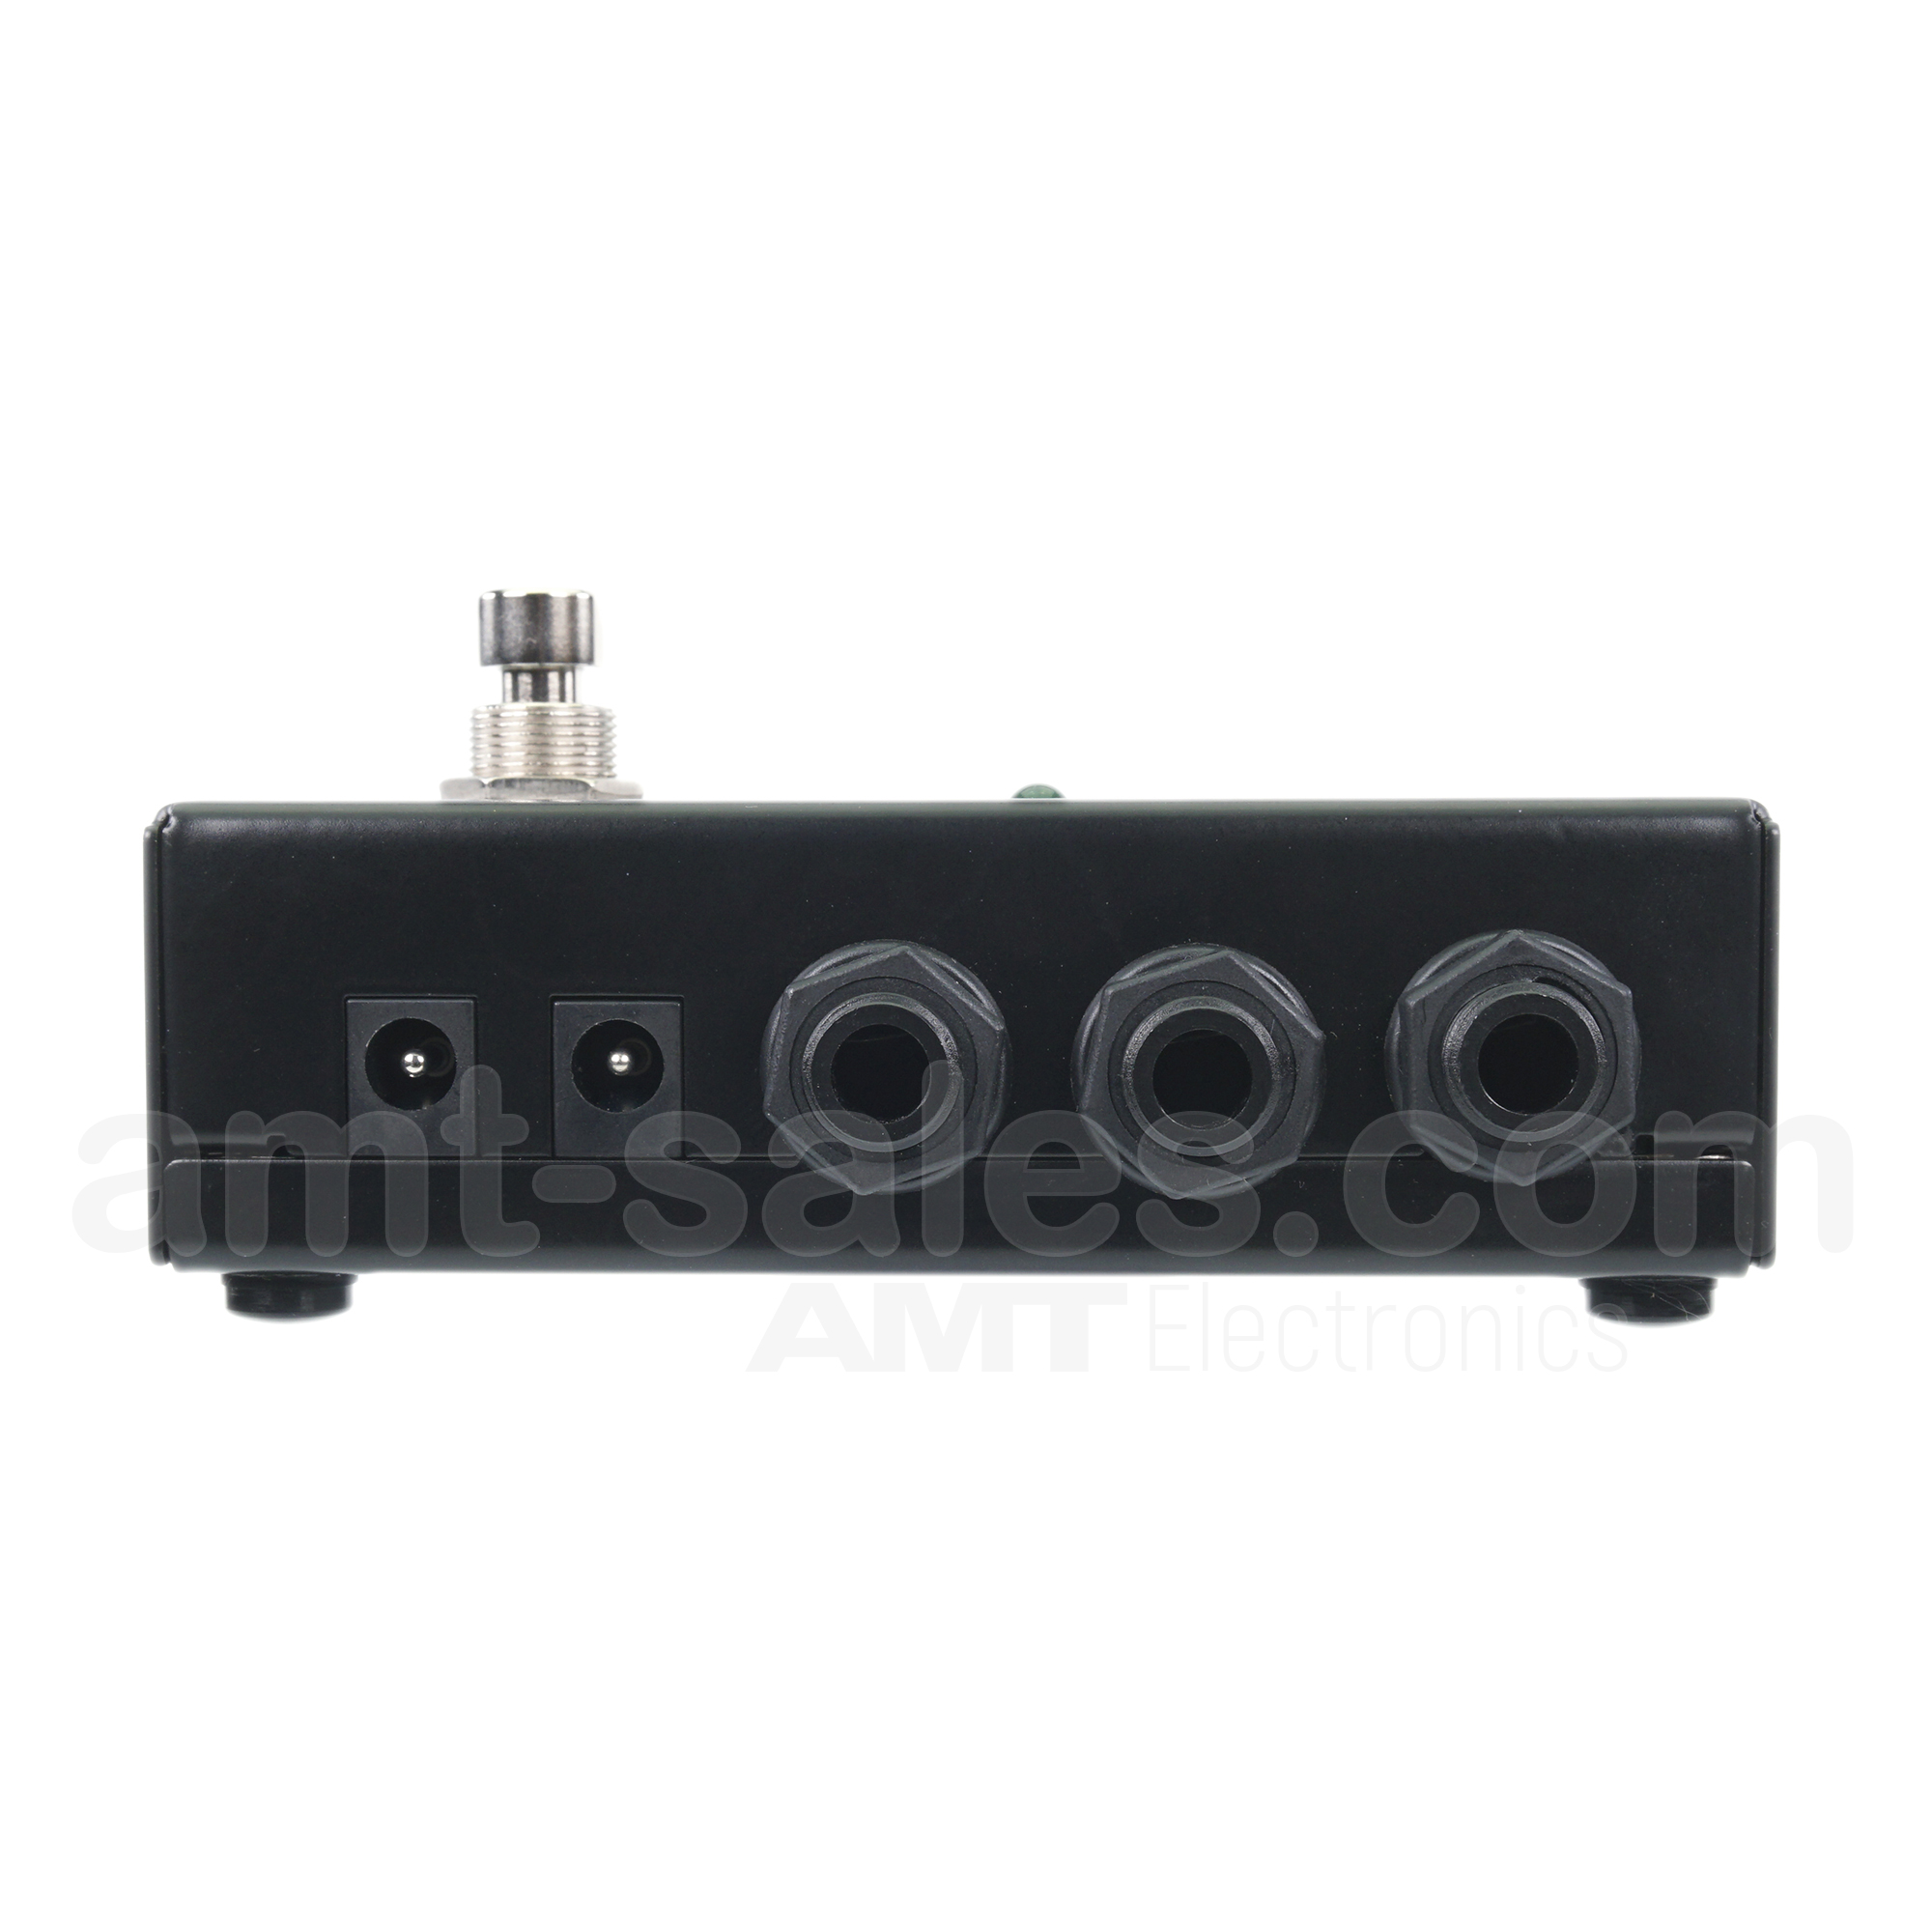 AMT TS-2 - A/B channel/pedal passive selector